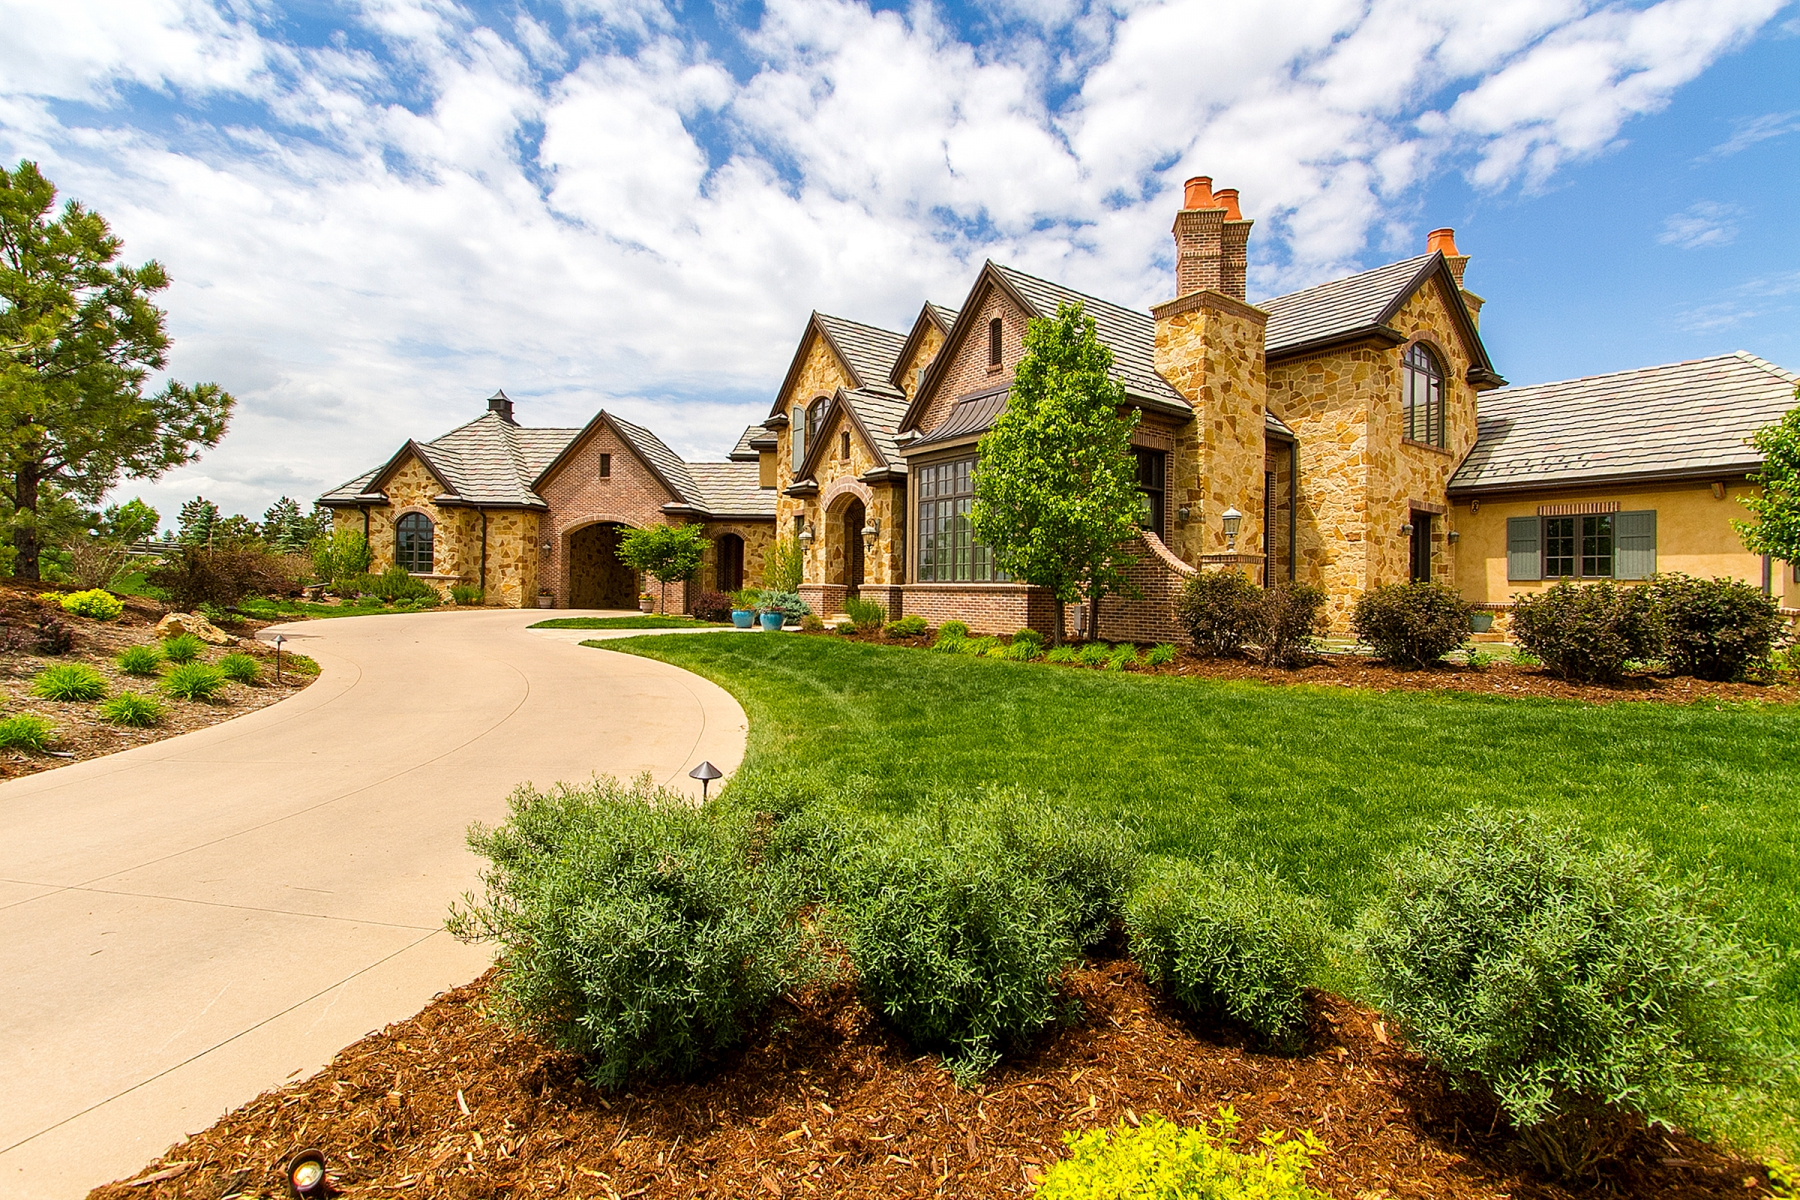 Single Family Home for Sale at 4081 Preserve Parkway 4081 Preserve Parkway N. Greenwood Village, Colorado 80121 United States